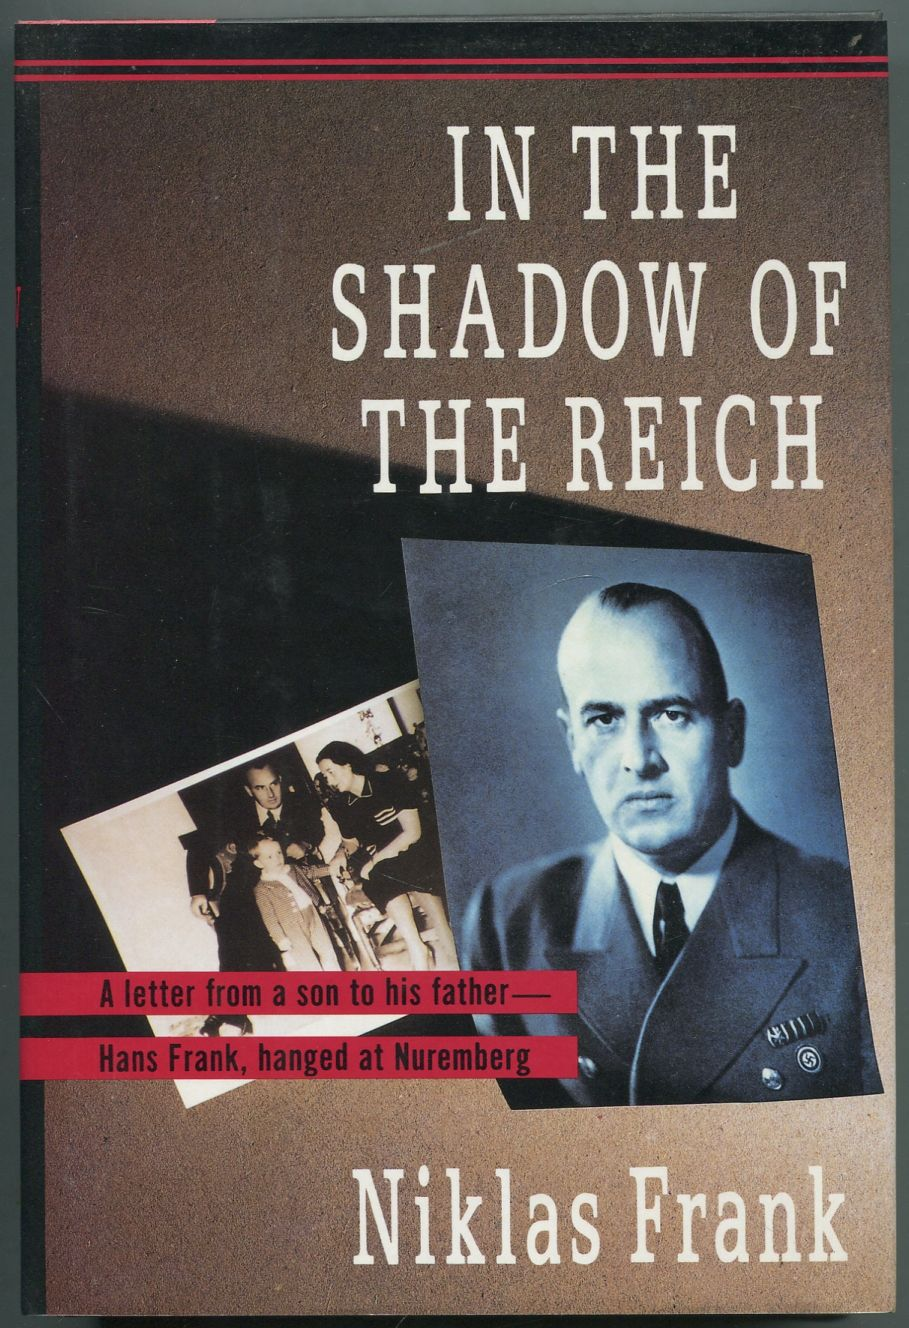 Niklas Frank: In the Shadow of the Reich (book cover)